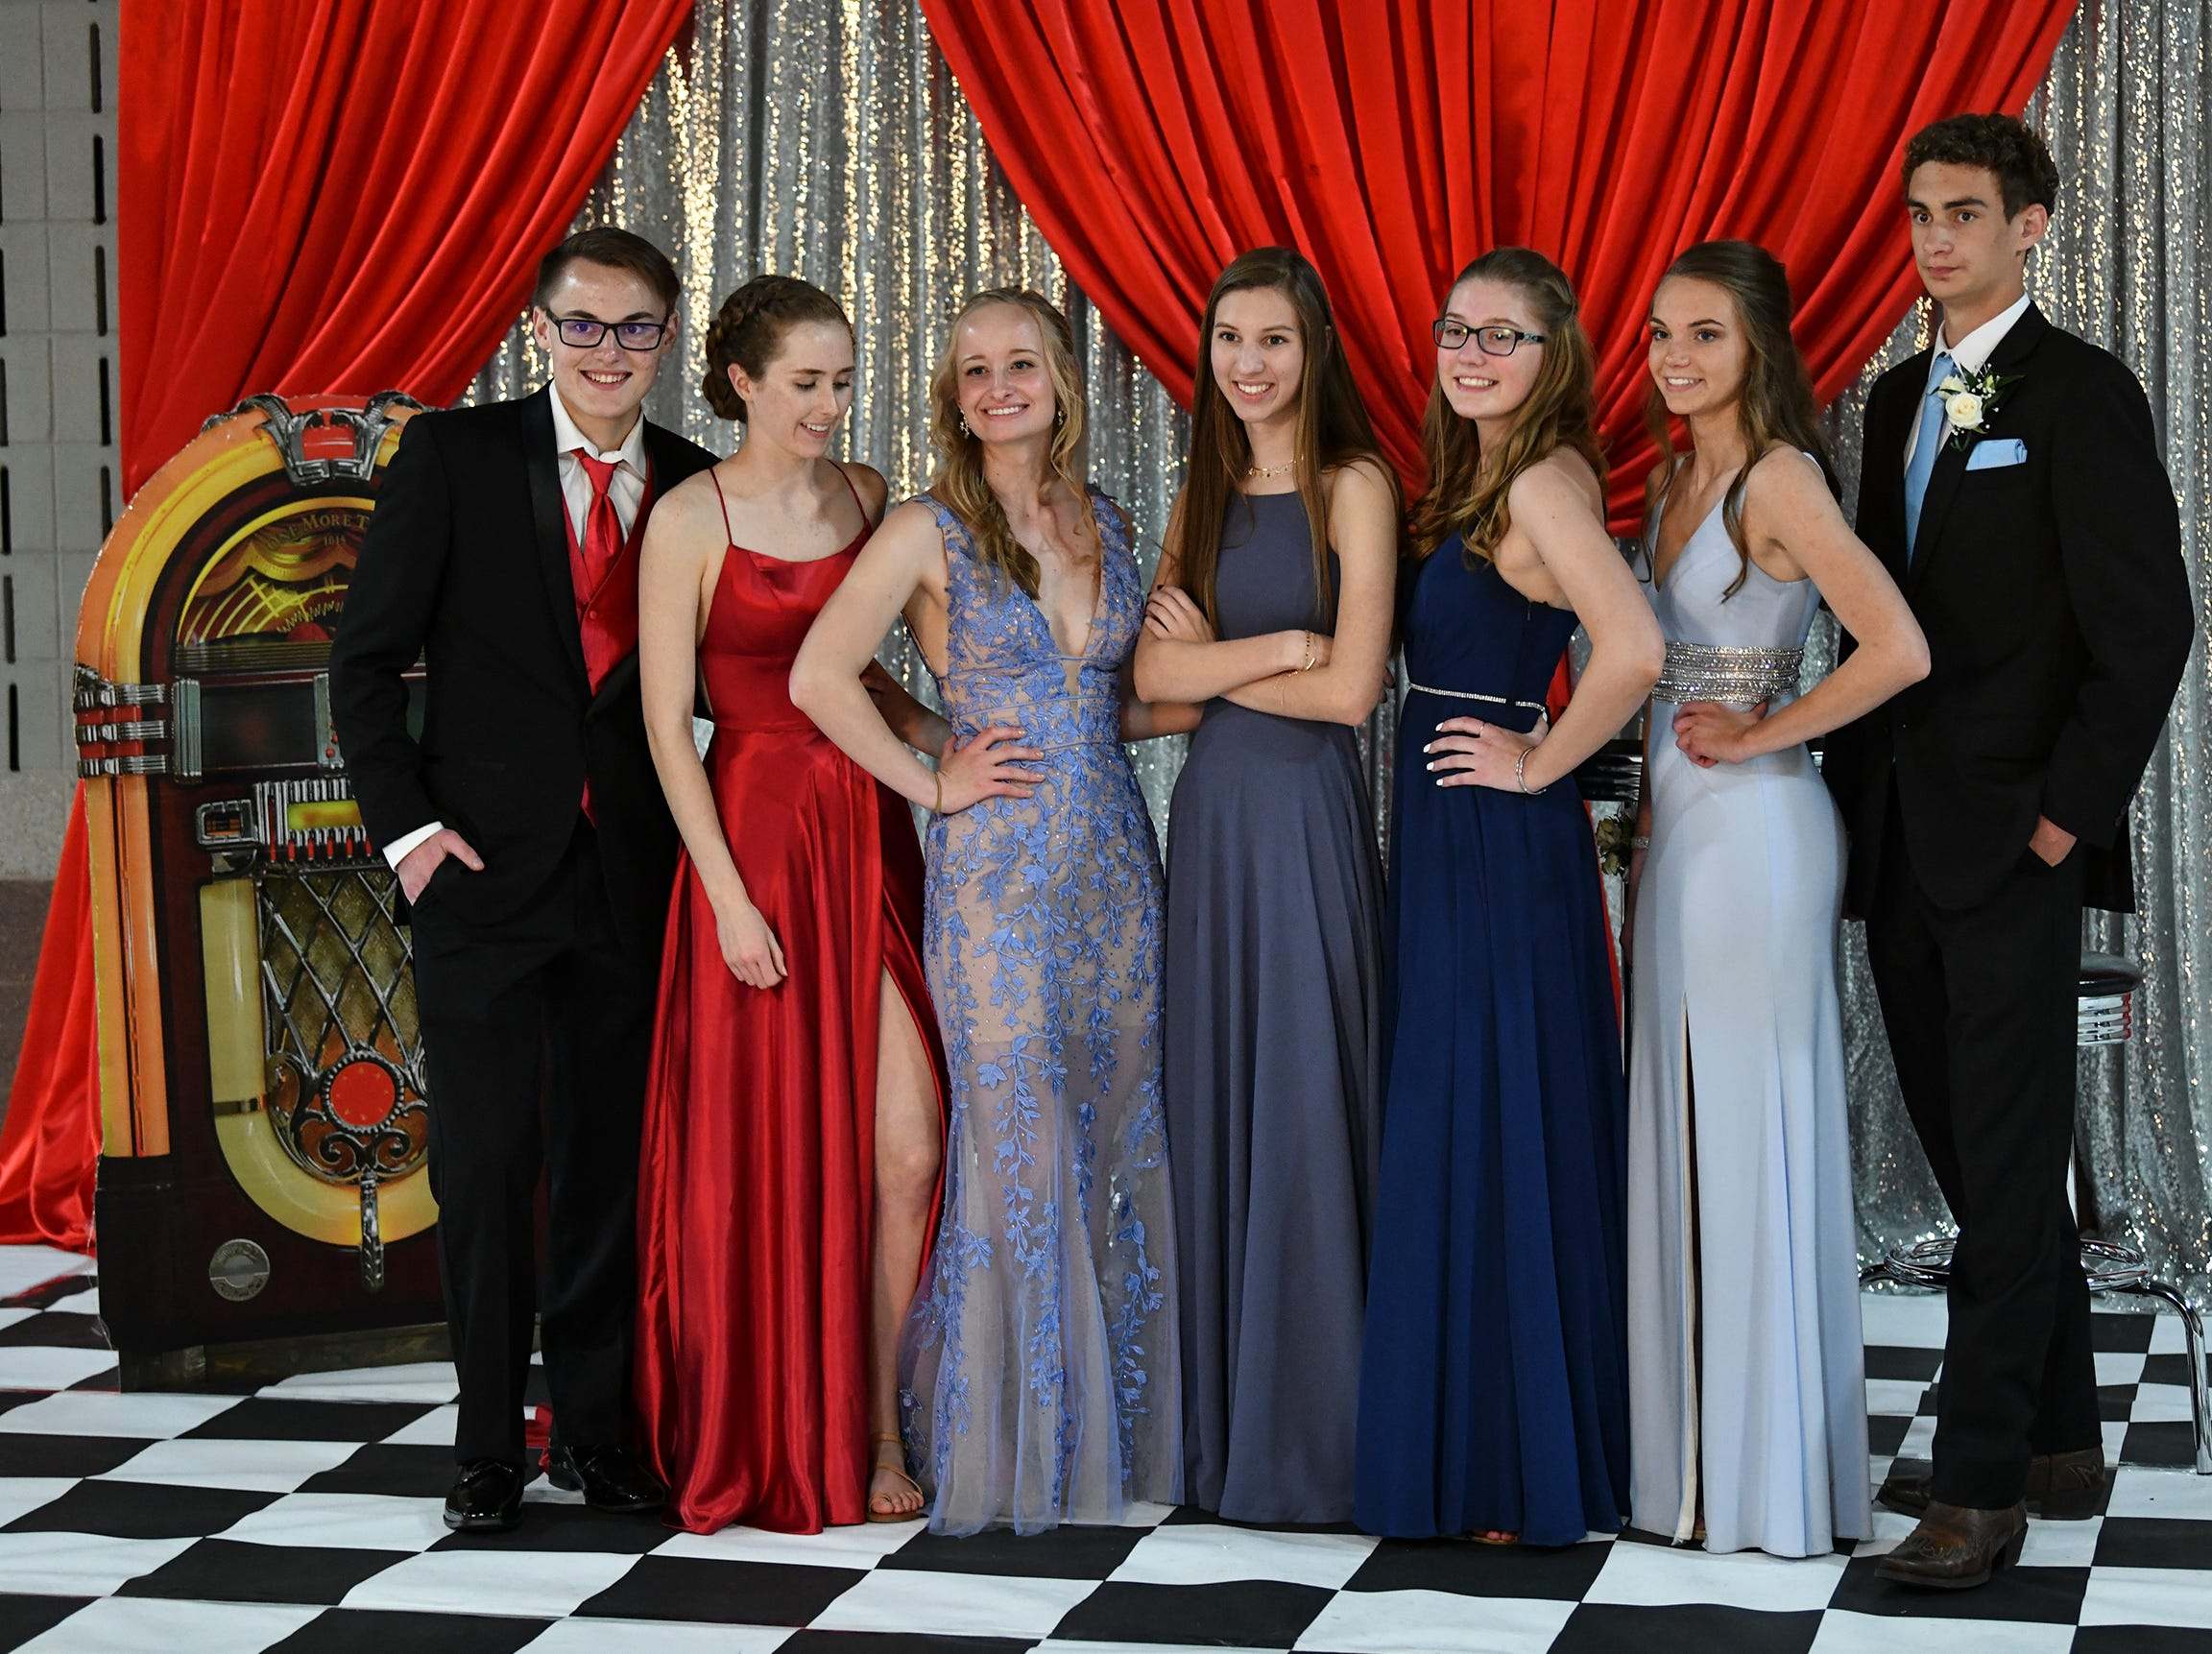 Friends gather for a photo during Sartell High School's prom Saturday, May 4, at the River's Edge Convention Center in St. Cloud.